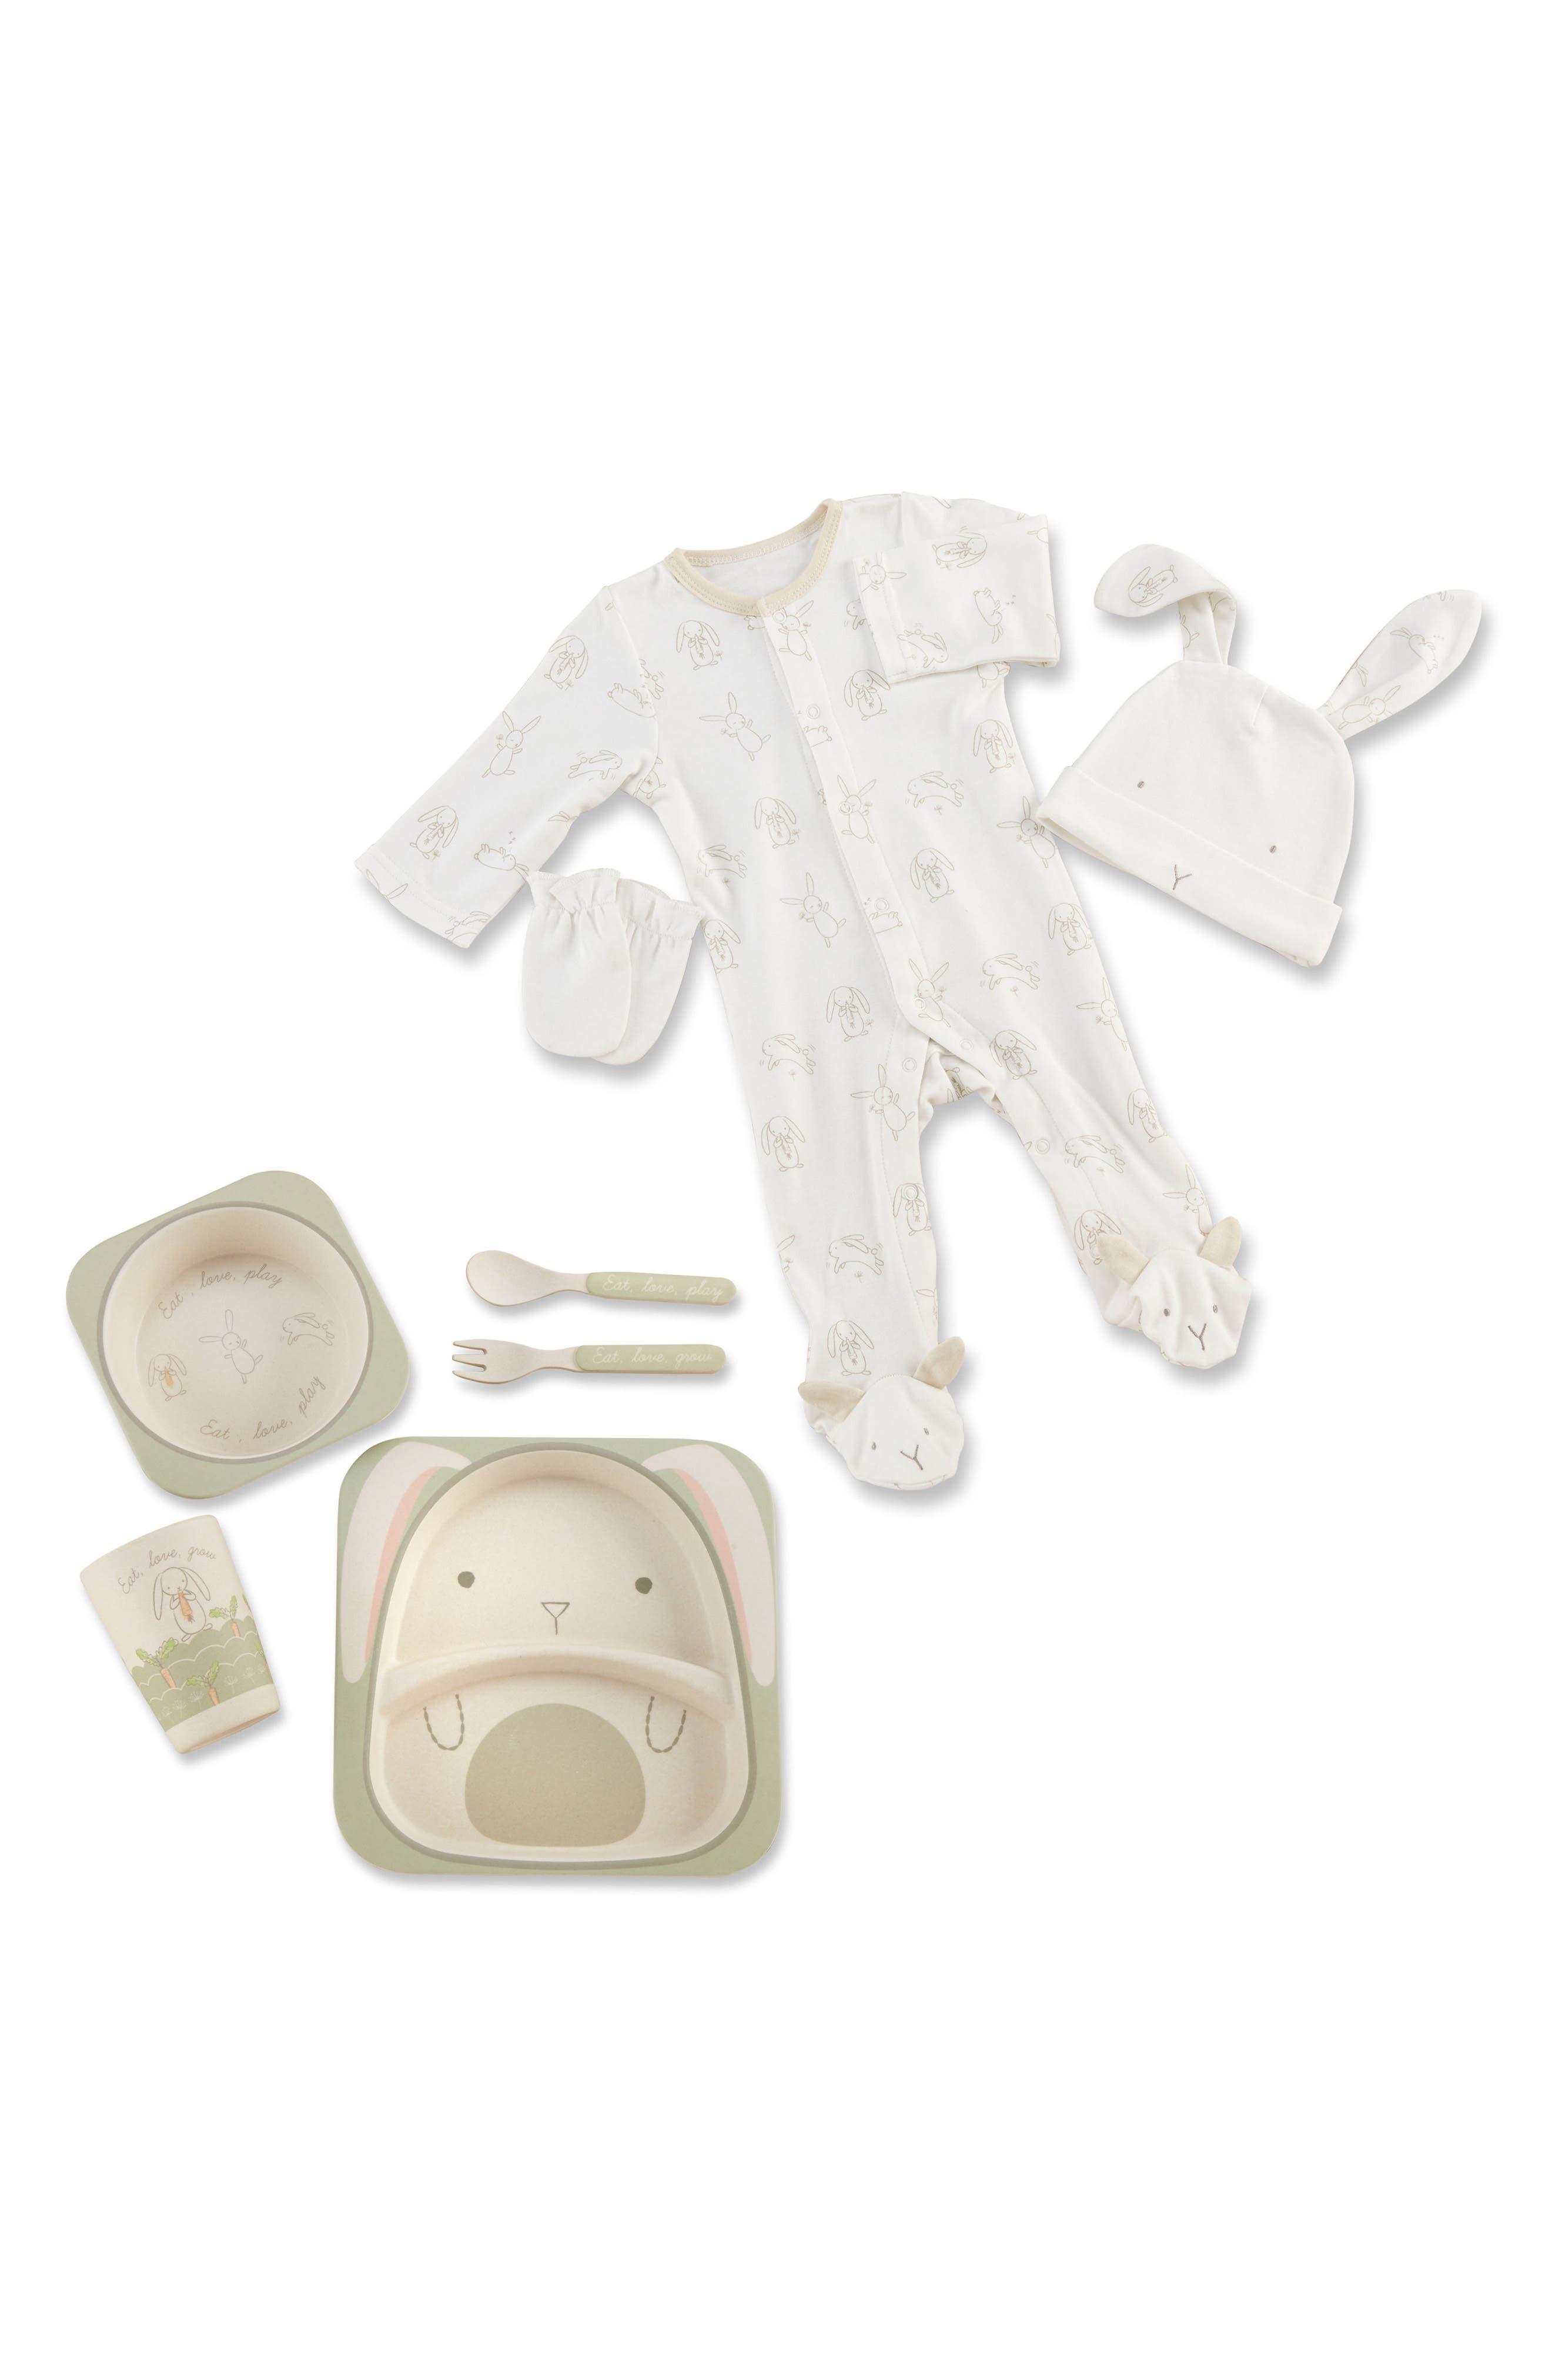 Baby Aspen Natural Baby One-Piece Pajamas, Hat, Mittens & 5-Piece Feeding Set (Baby)